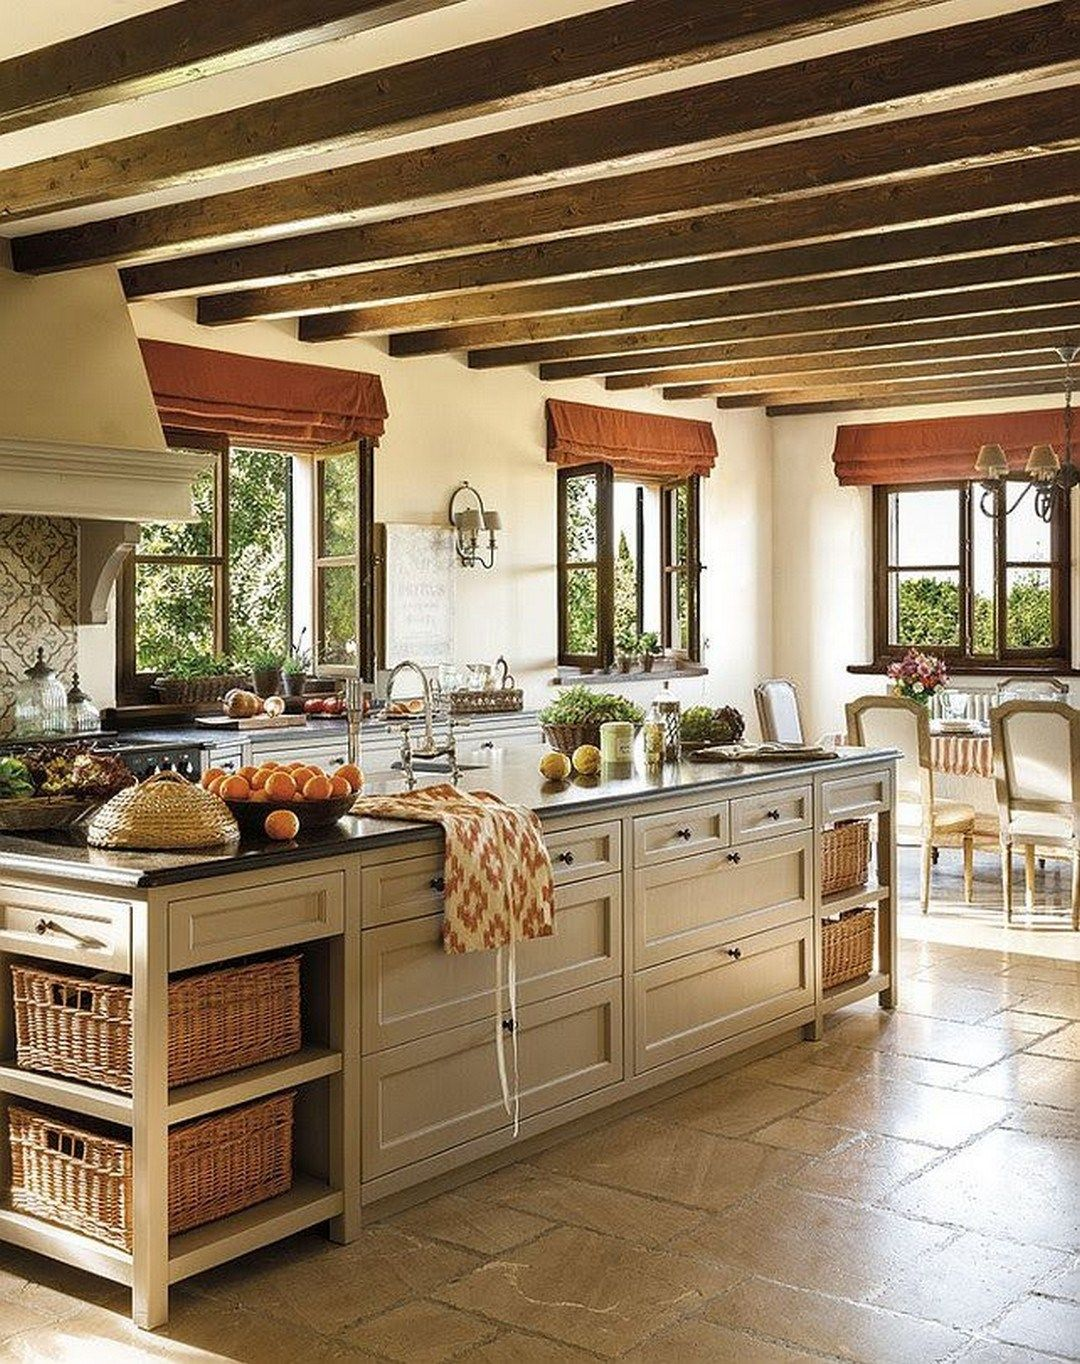 99 French Country Kitchen Modern Design Ideas (8) | Colony kitchen ...